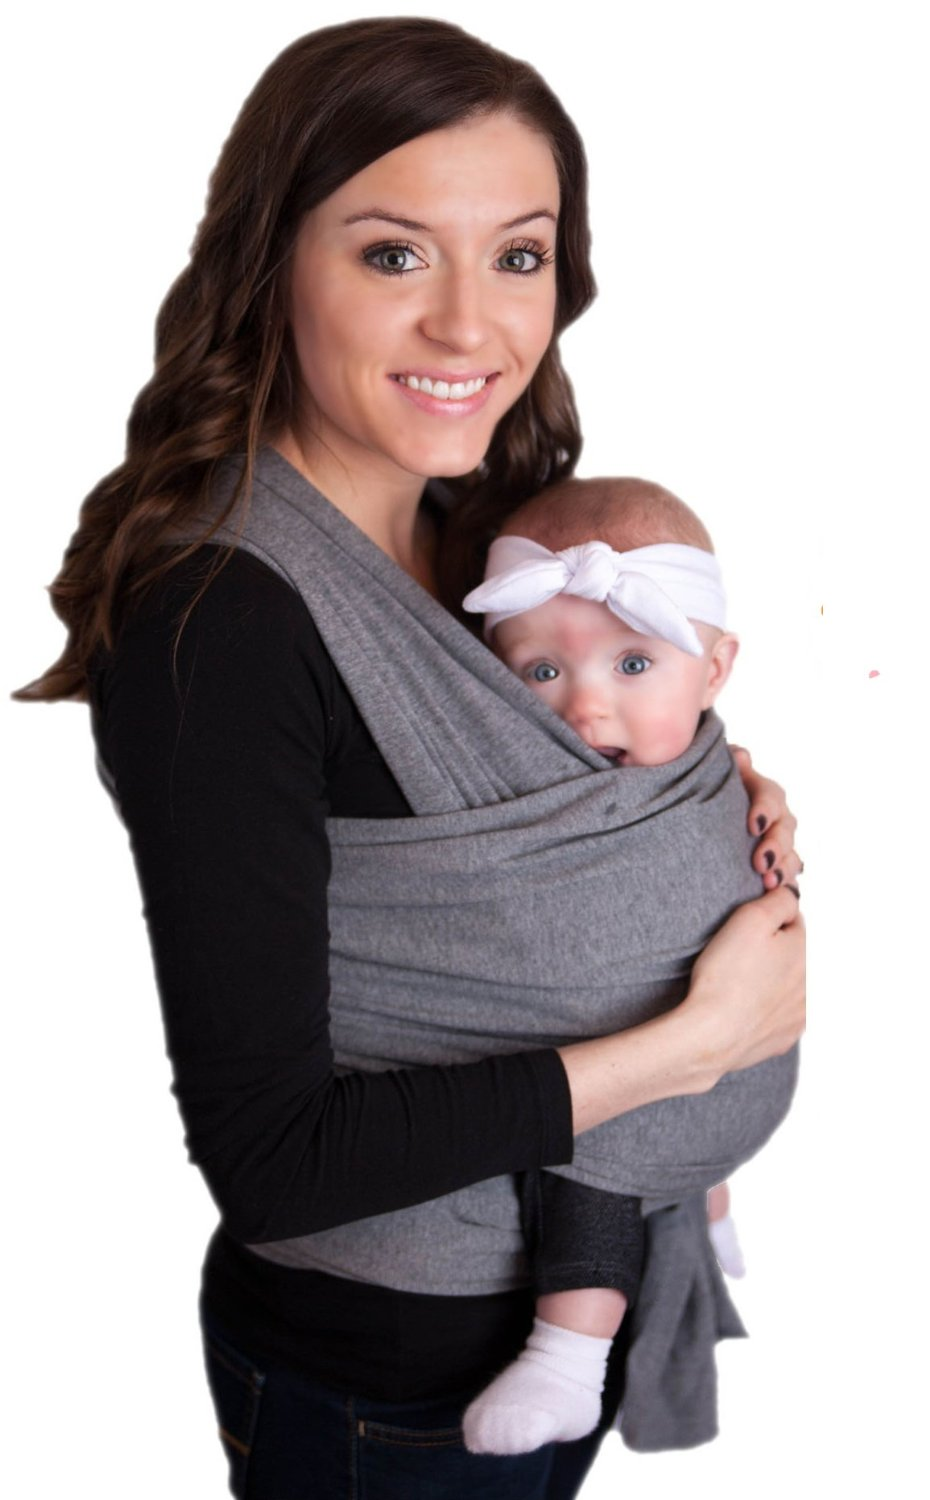 Amazon.com : LIFETIME GUARANTEE - CuddleBug Baby Wrap Carrier - Grey Baby Wrap - Free Shipping - ALL NATURAL BABY CARRIER- One Size Fits All - Money Back Guarantee (Grey)